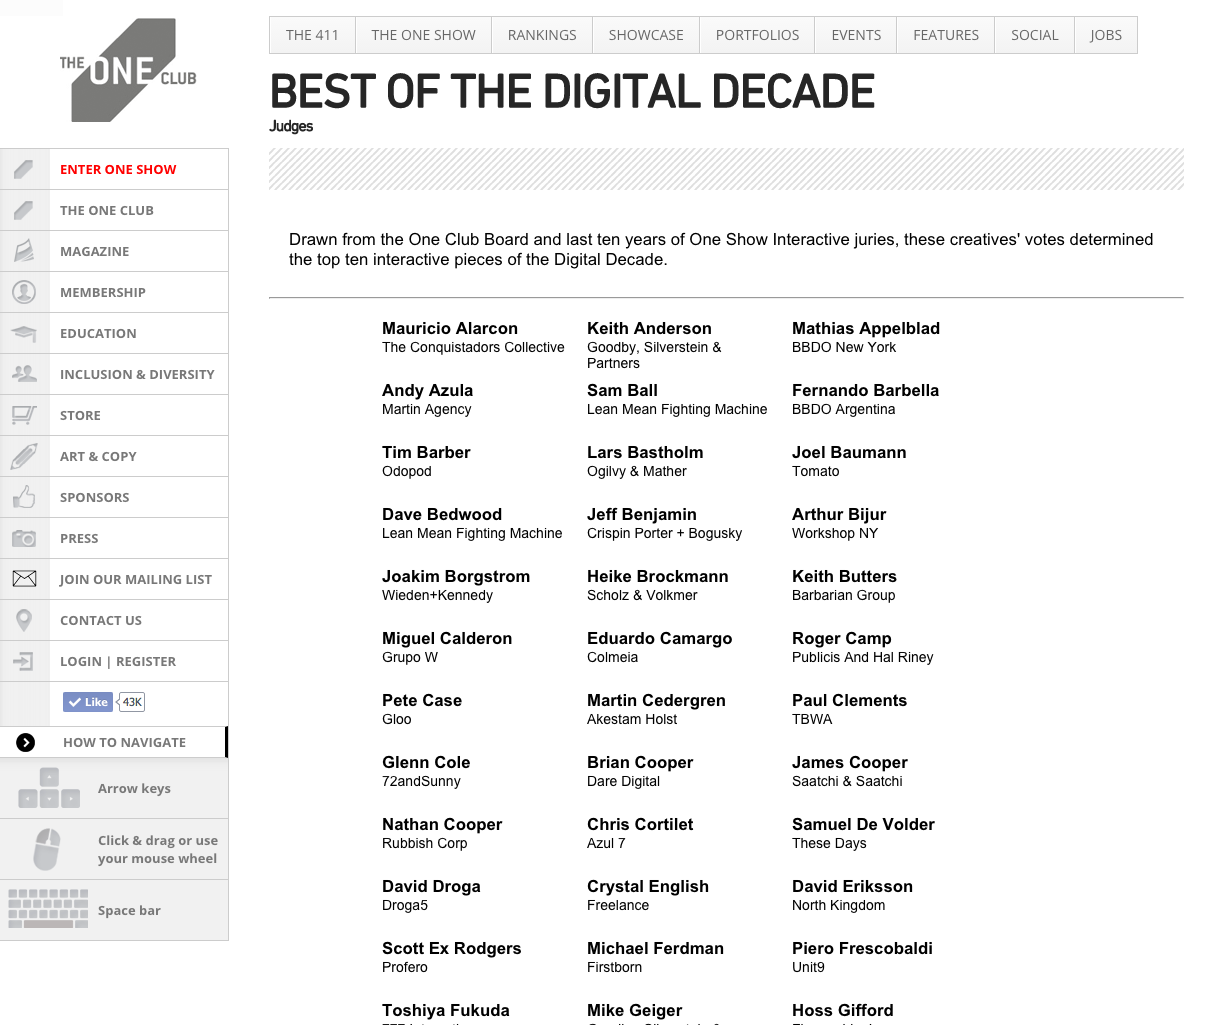 Best of the Digital Decade Judges